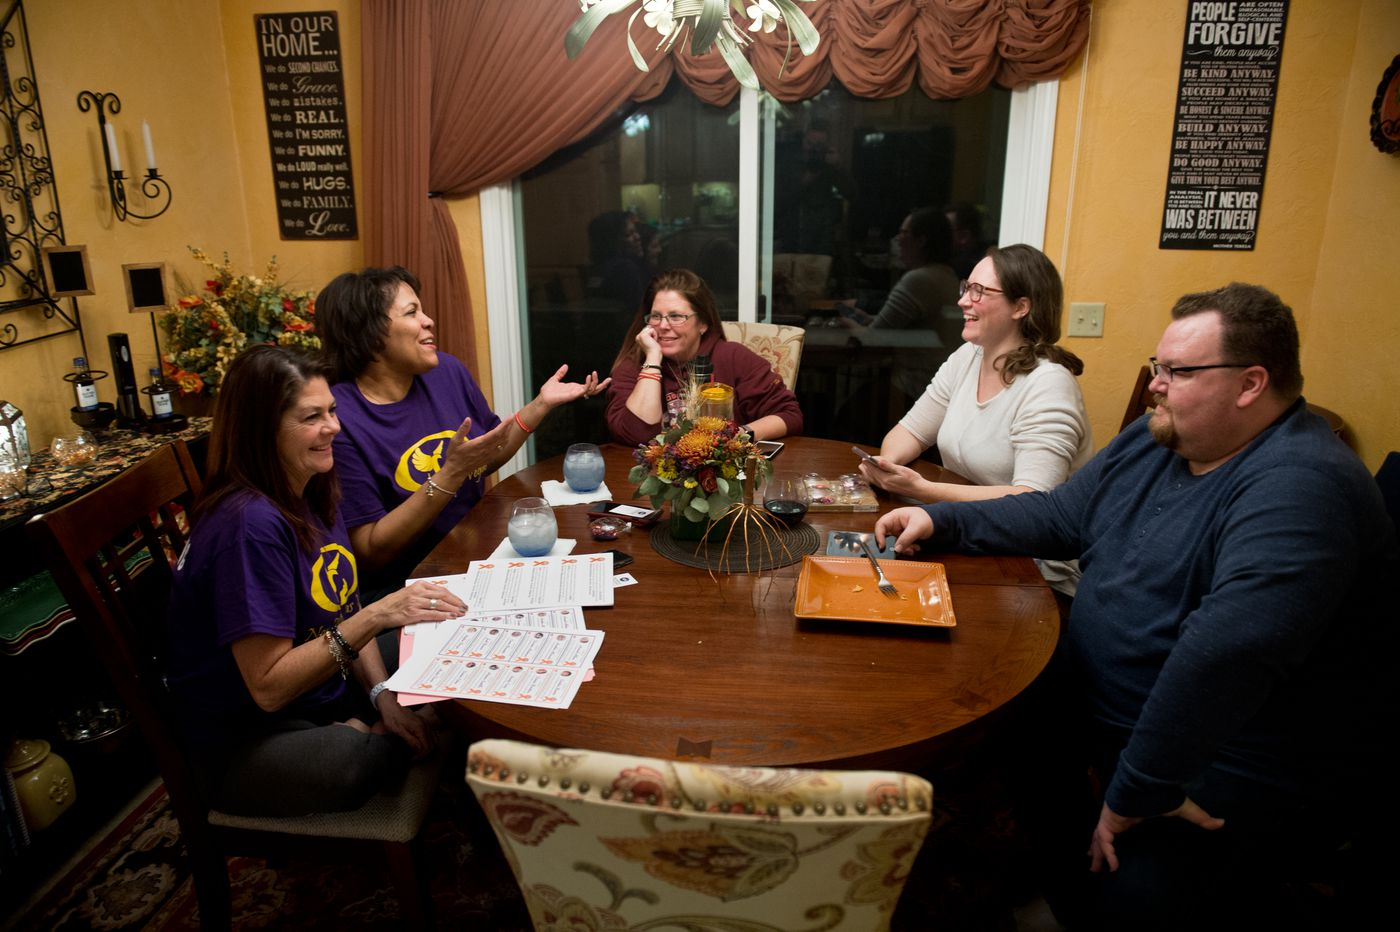 Five Alaskans who survived the mass shooting at the Route 91 Harvest Festival in Las Vegas gathered for dinner on December 1, 2017, in Anchorage. From left are Jaimie Farrell, Michele McKean, Chris Holman, Chrissy Braniger and Erik Ross. (Marc Lester / ADN)